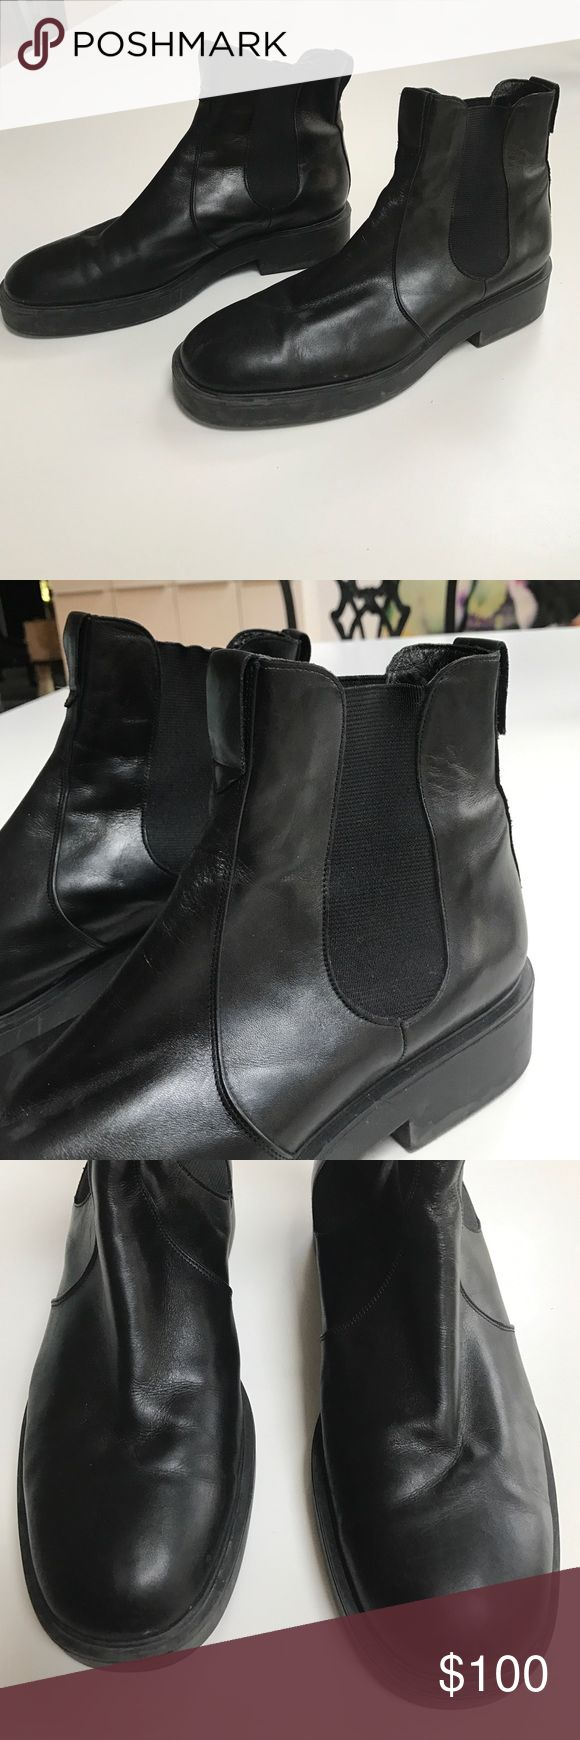 Vintage Stephane Kélian Black Leather Chelsea boot Great classic black leather boot. 1.25 inch rubber heel with a .75 inch platform. Extremely comfortable, utilitarian boot! Size 9 but also will fit a 9.5 Stephane Kélian Shoes Ankle Boots & Booties